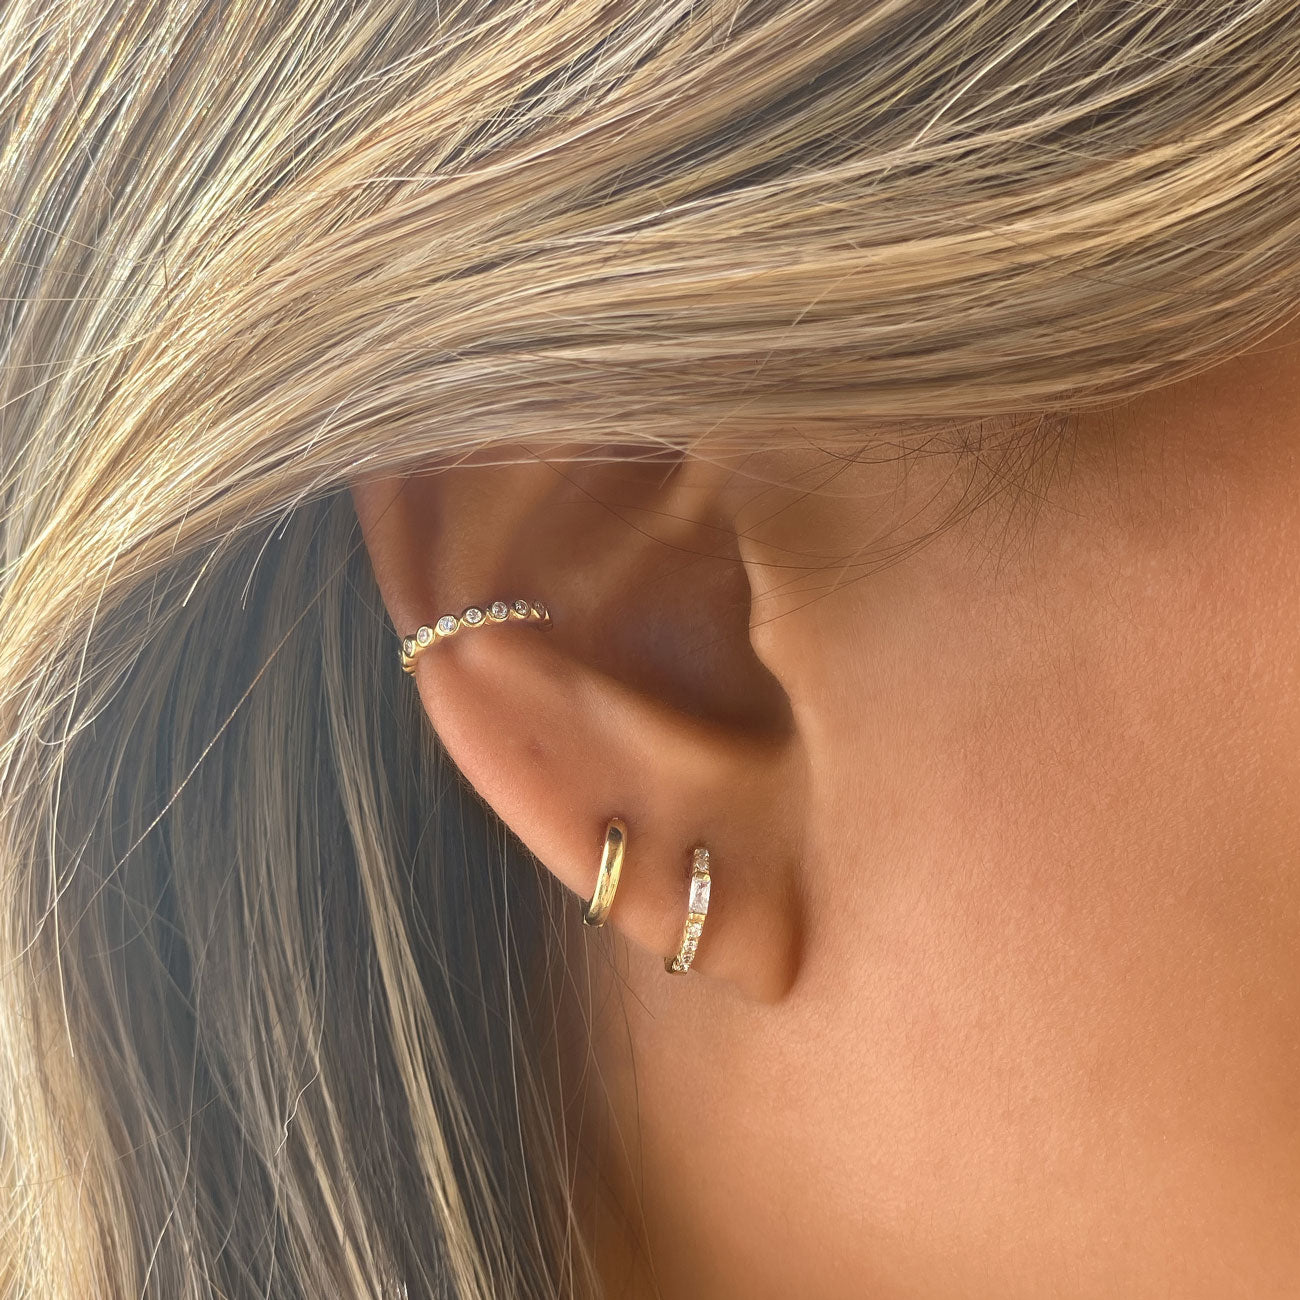 Gold huggie earrings paired with pave conch ear cuff